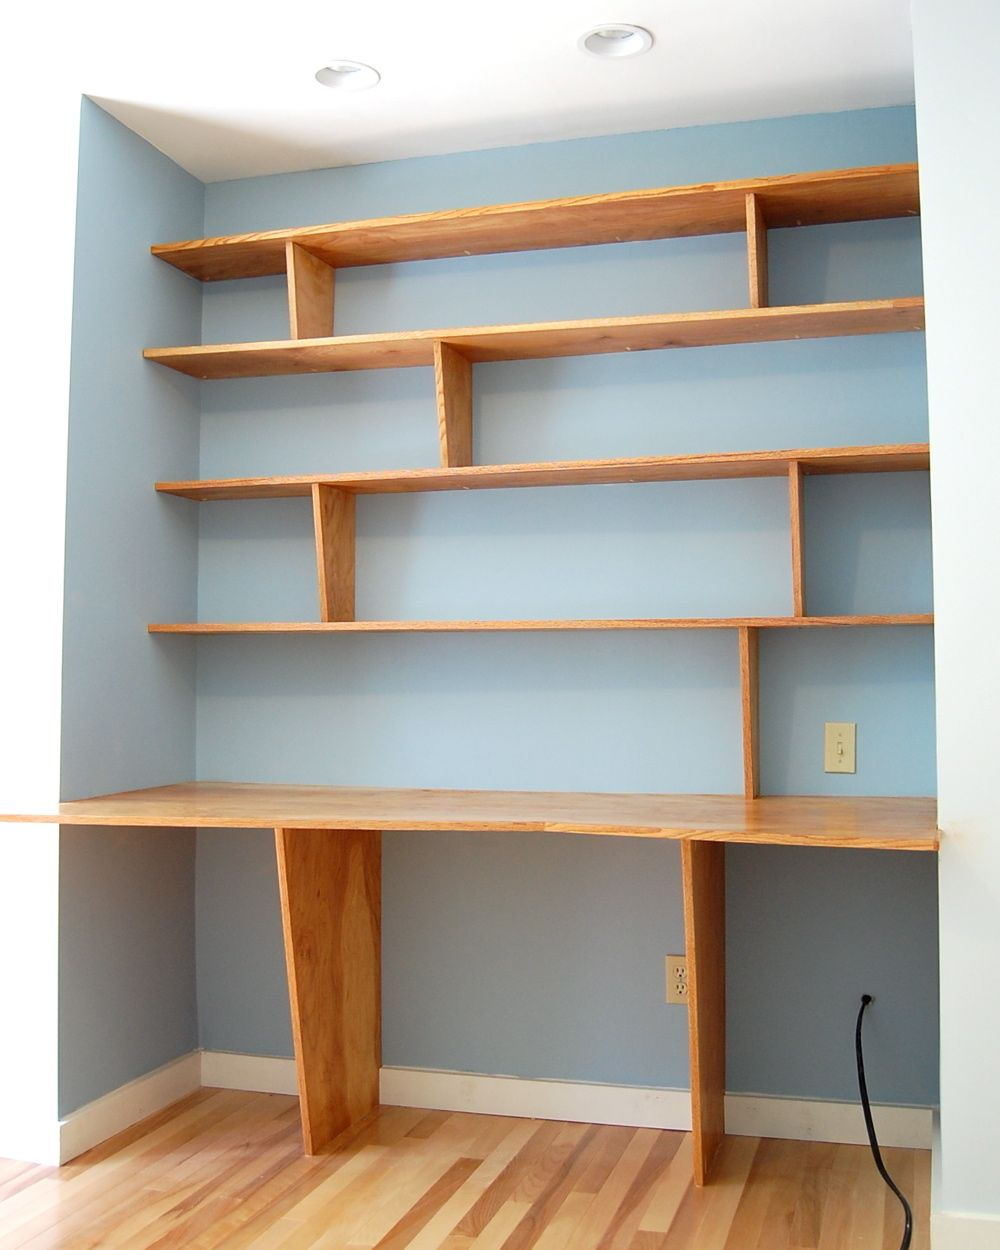 Search For Furniture: Study Shelves - Google Search